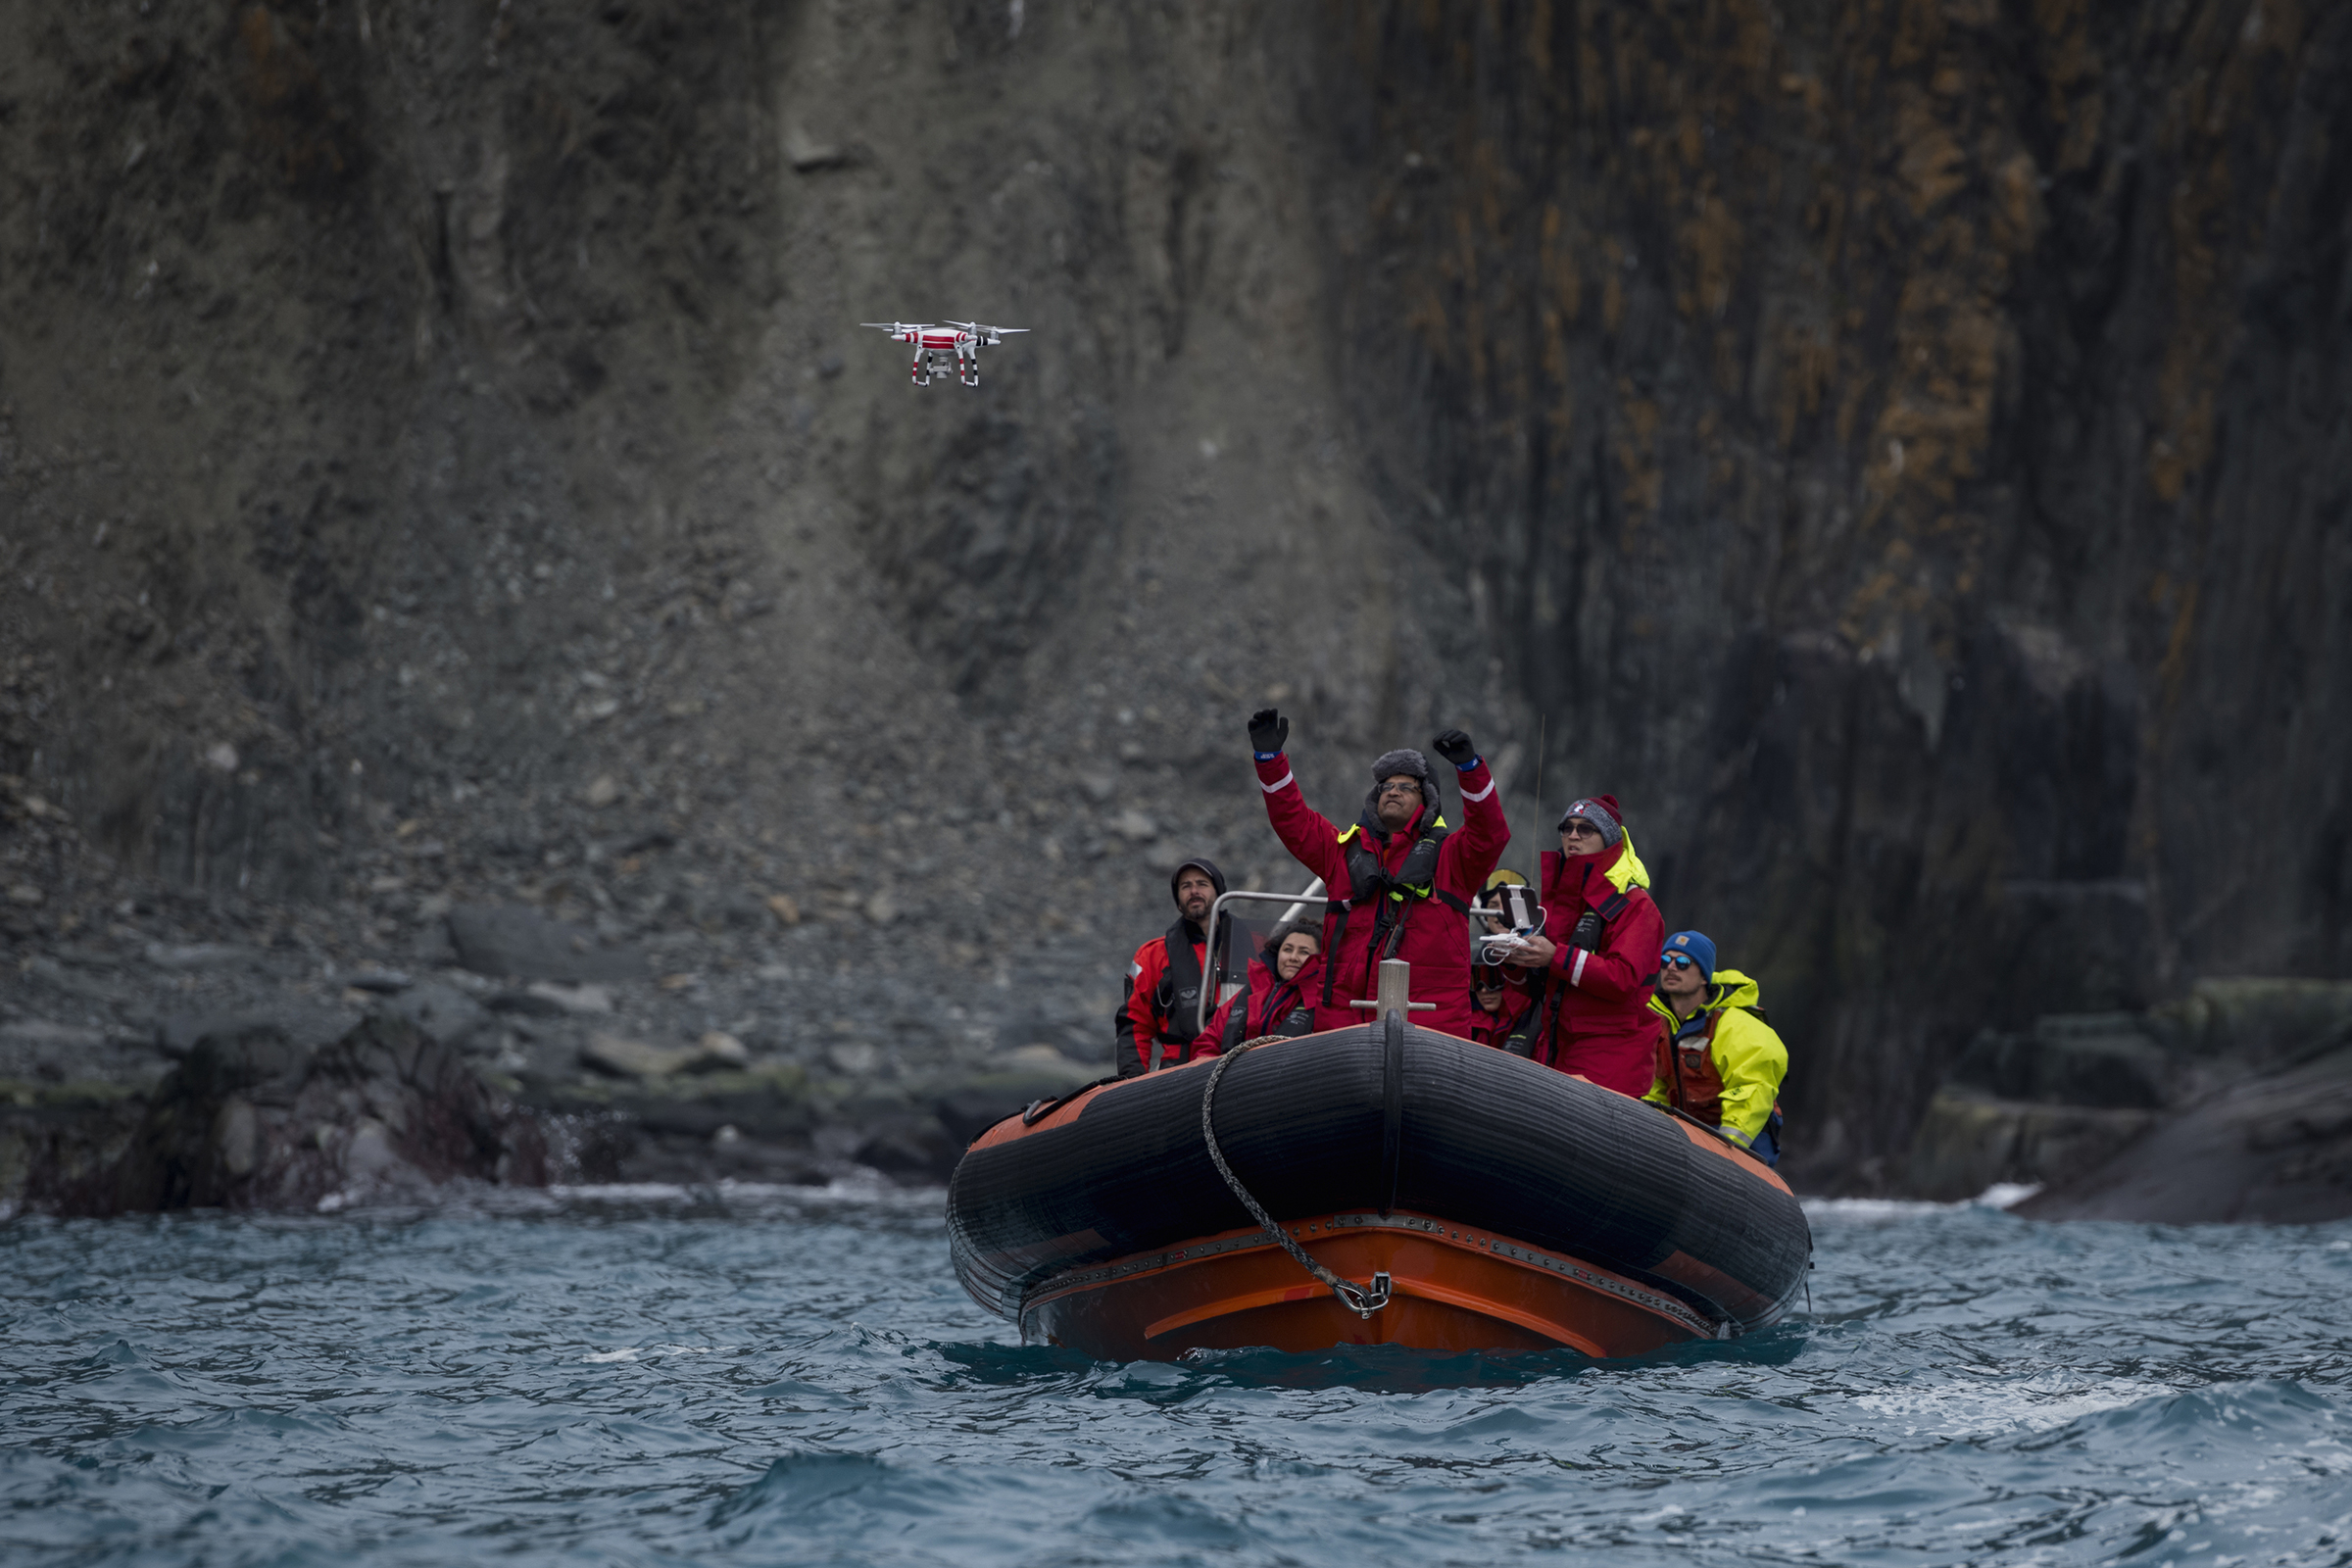 Yang Liu and Vikrant Shah, from North Eastern University, launch a drone from a Greenpeace inflatable. They will later use machine learning to do an automated count of penguin colonies on Elephant Island. The drone counts are later compared to the manual counts done by another team of scientists.